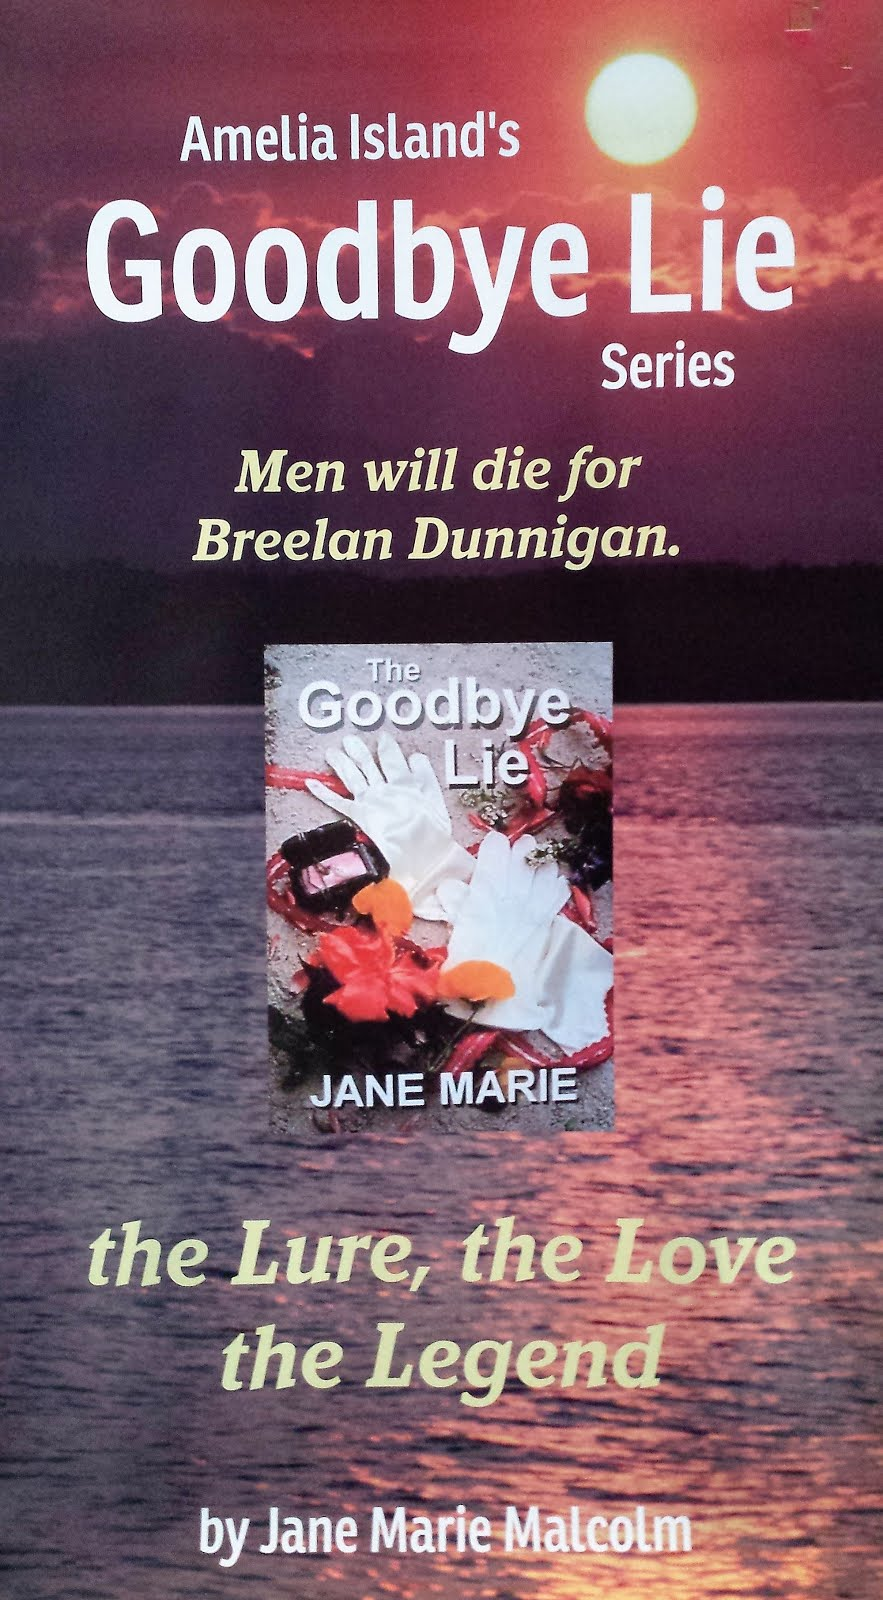 CLICK POSTER BELOW TO ORDER Amelia Island's GOODBYE LIE SERIES in Ebooks and Paperbacks